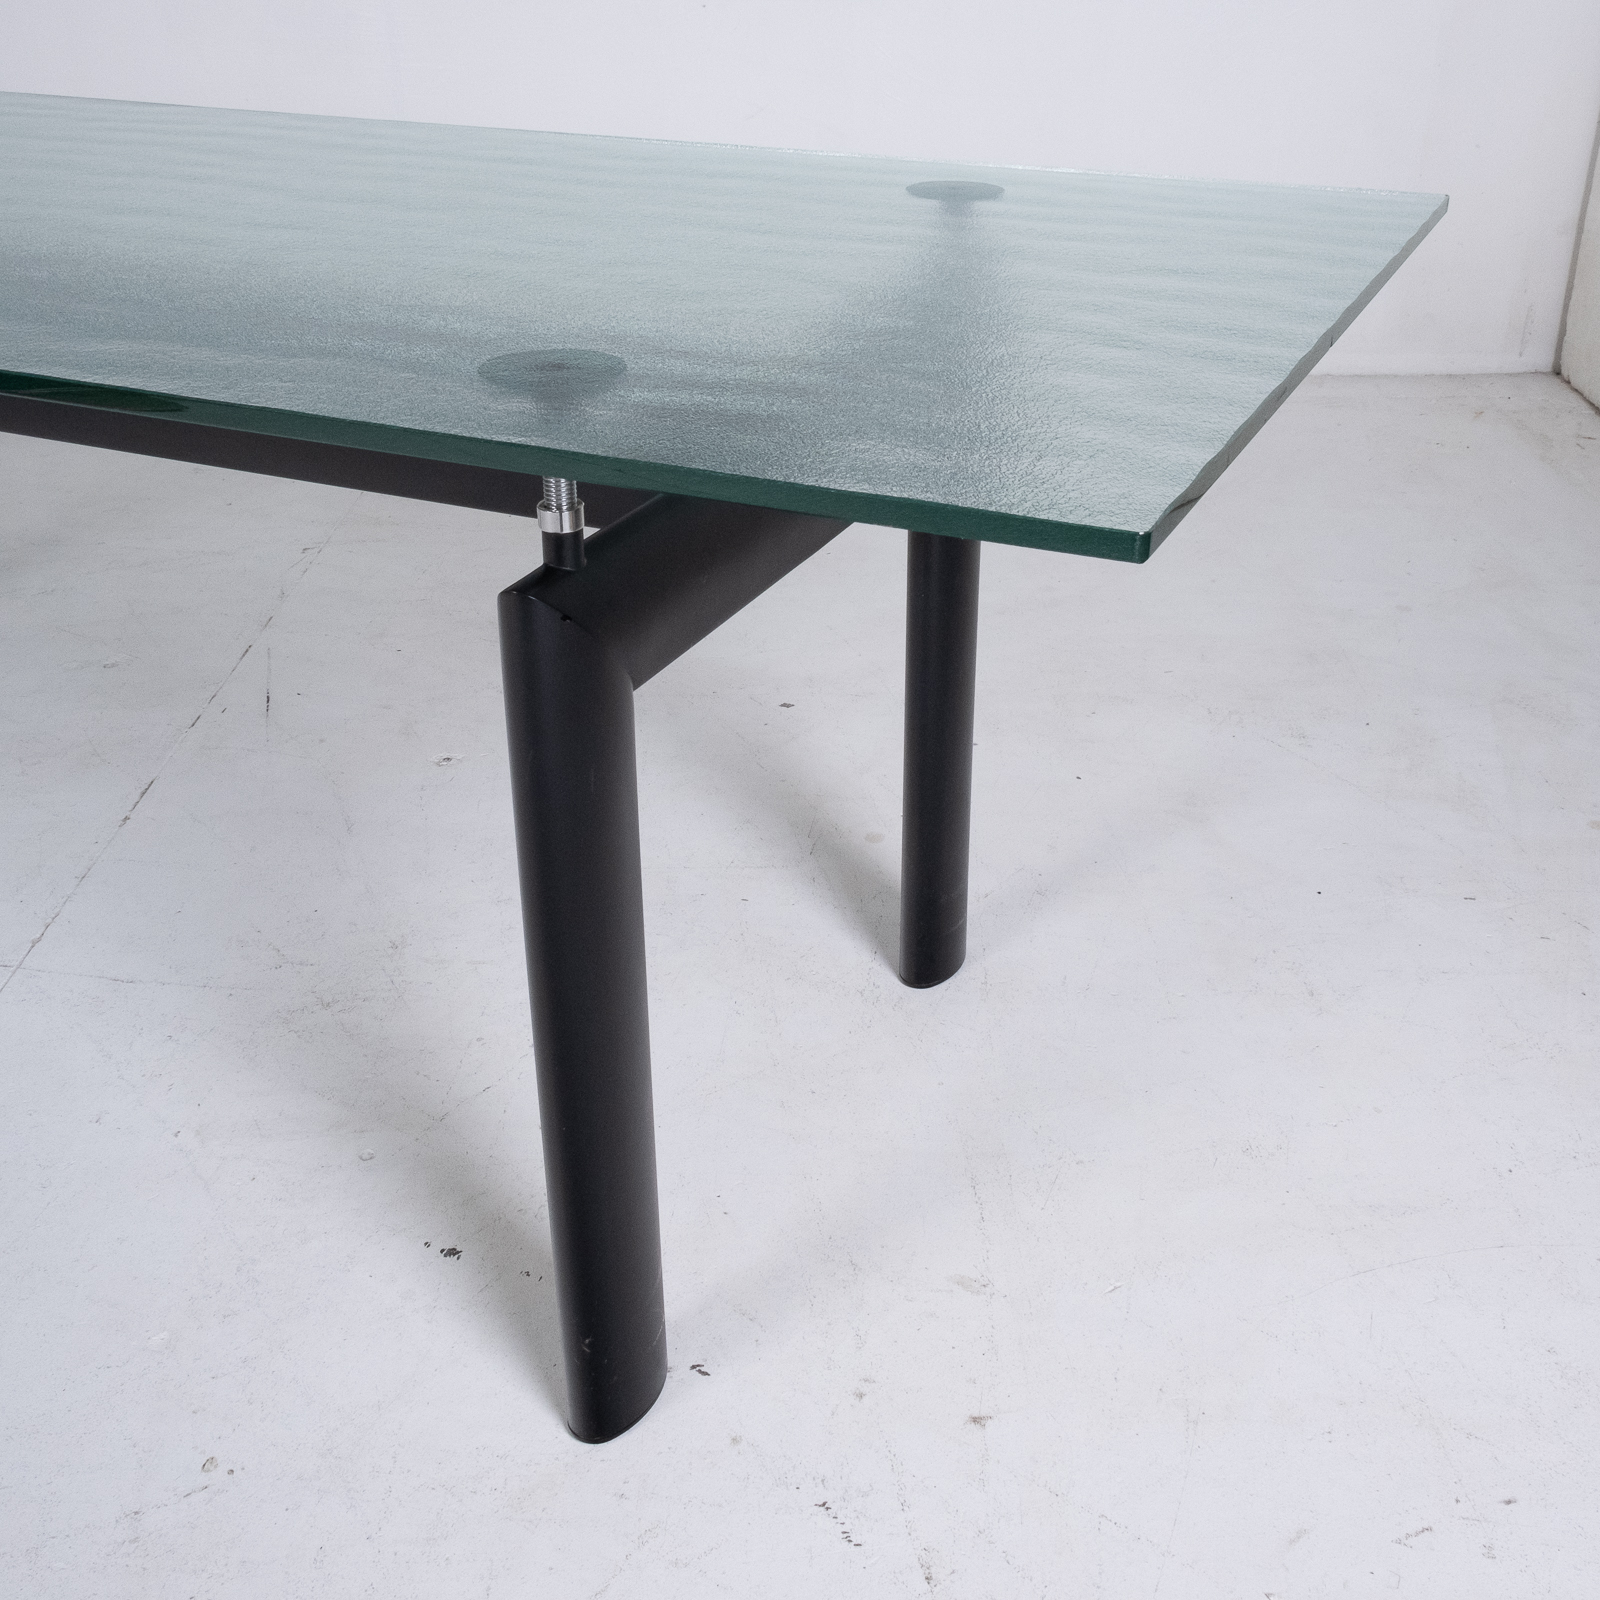 Model Lc6 Dining Table By Le Corbusier For Cassina, 1928 00010